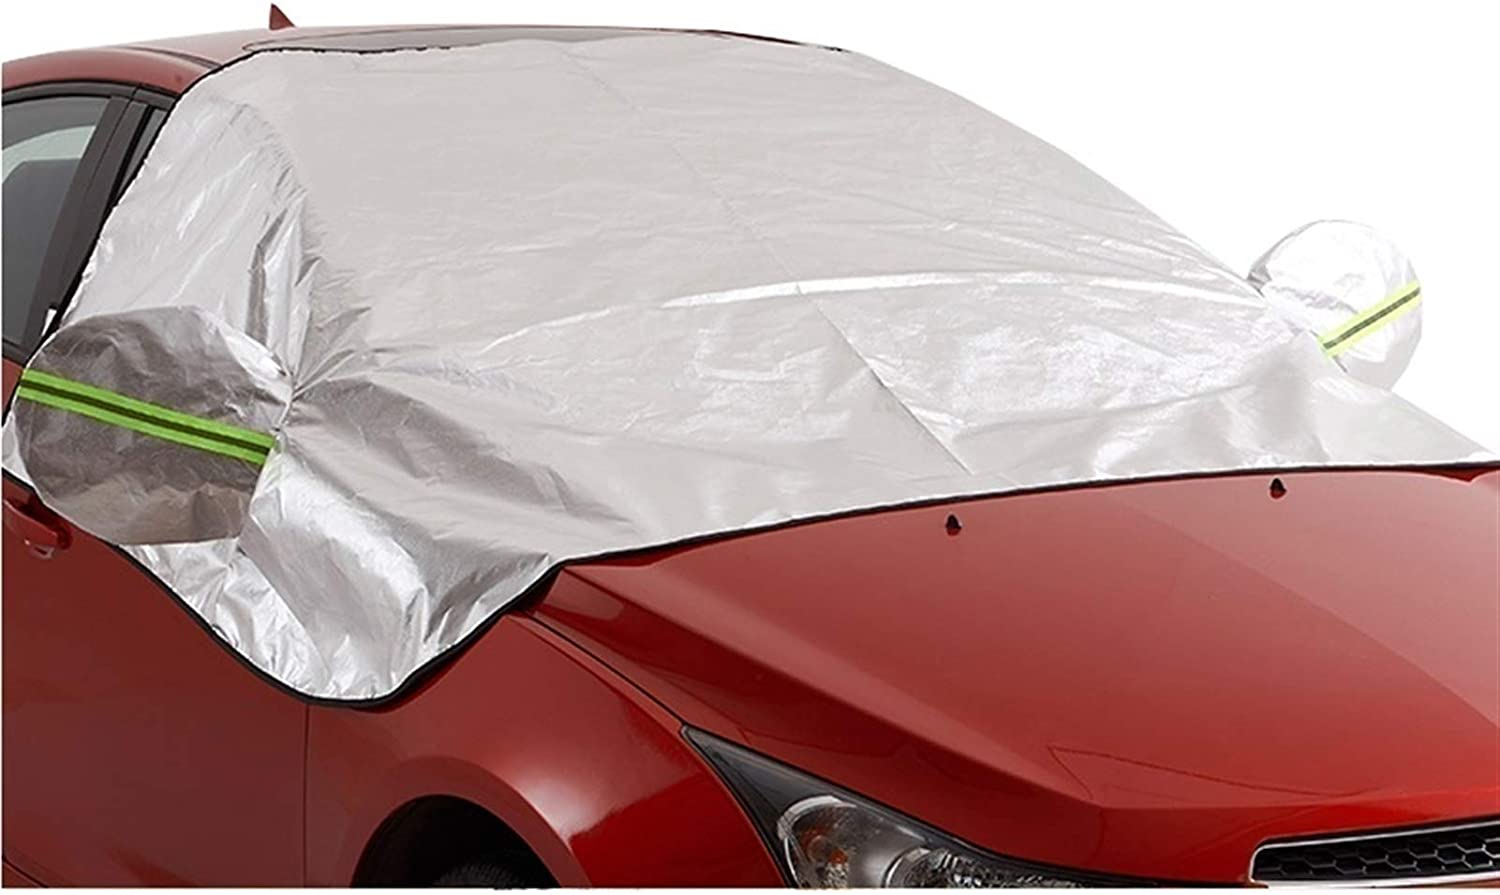 BACKJIA Car Credence Cover Windshield Waterproof Durable Outdoor H SALENEW very popular!